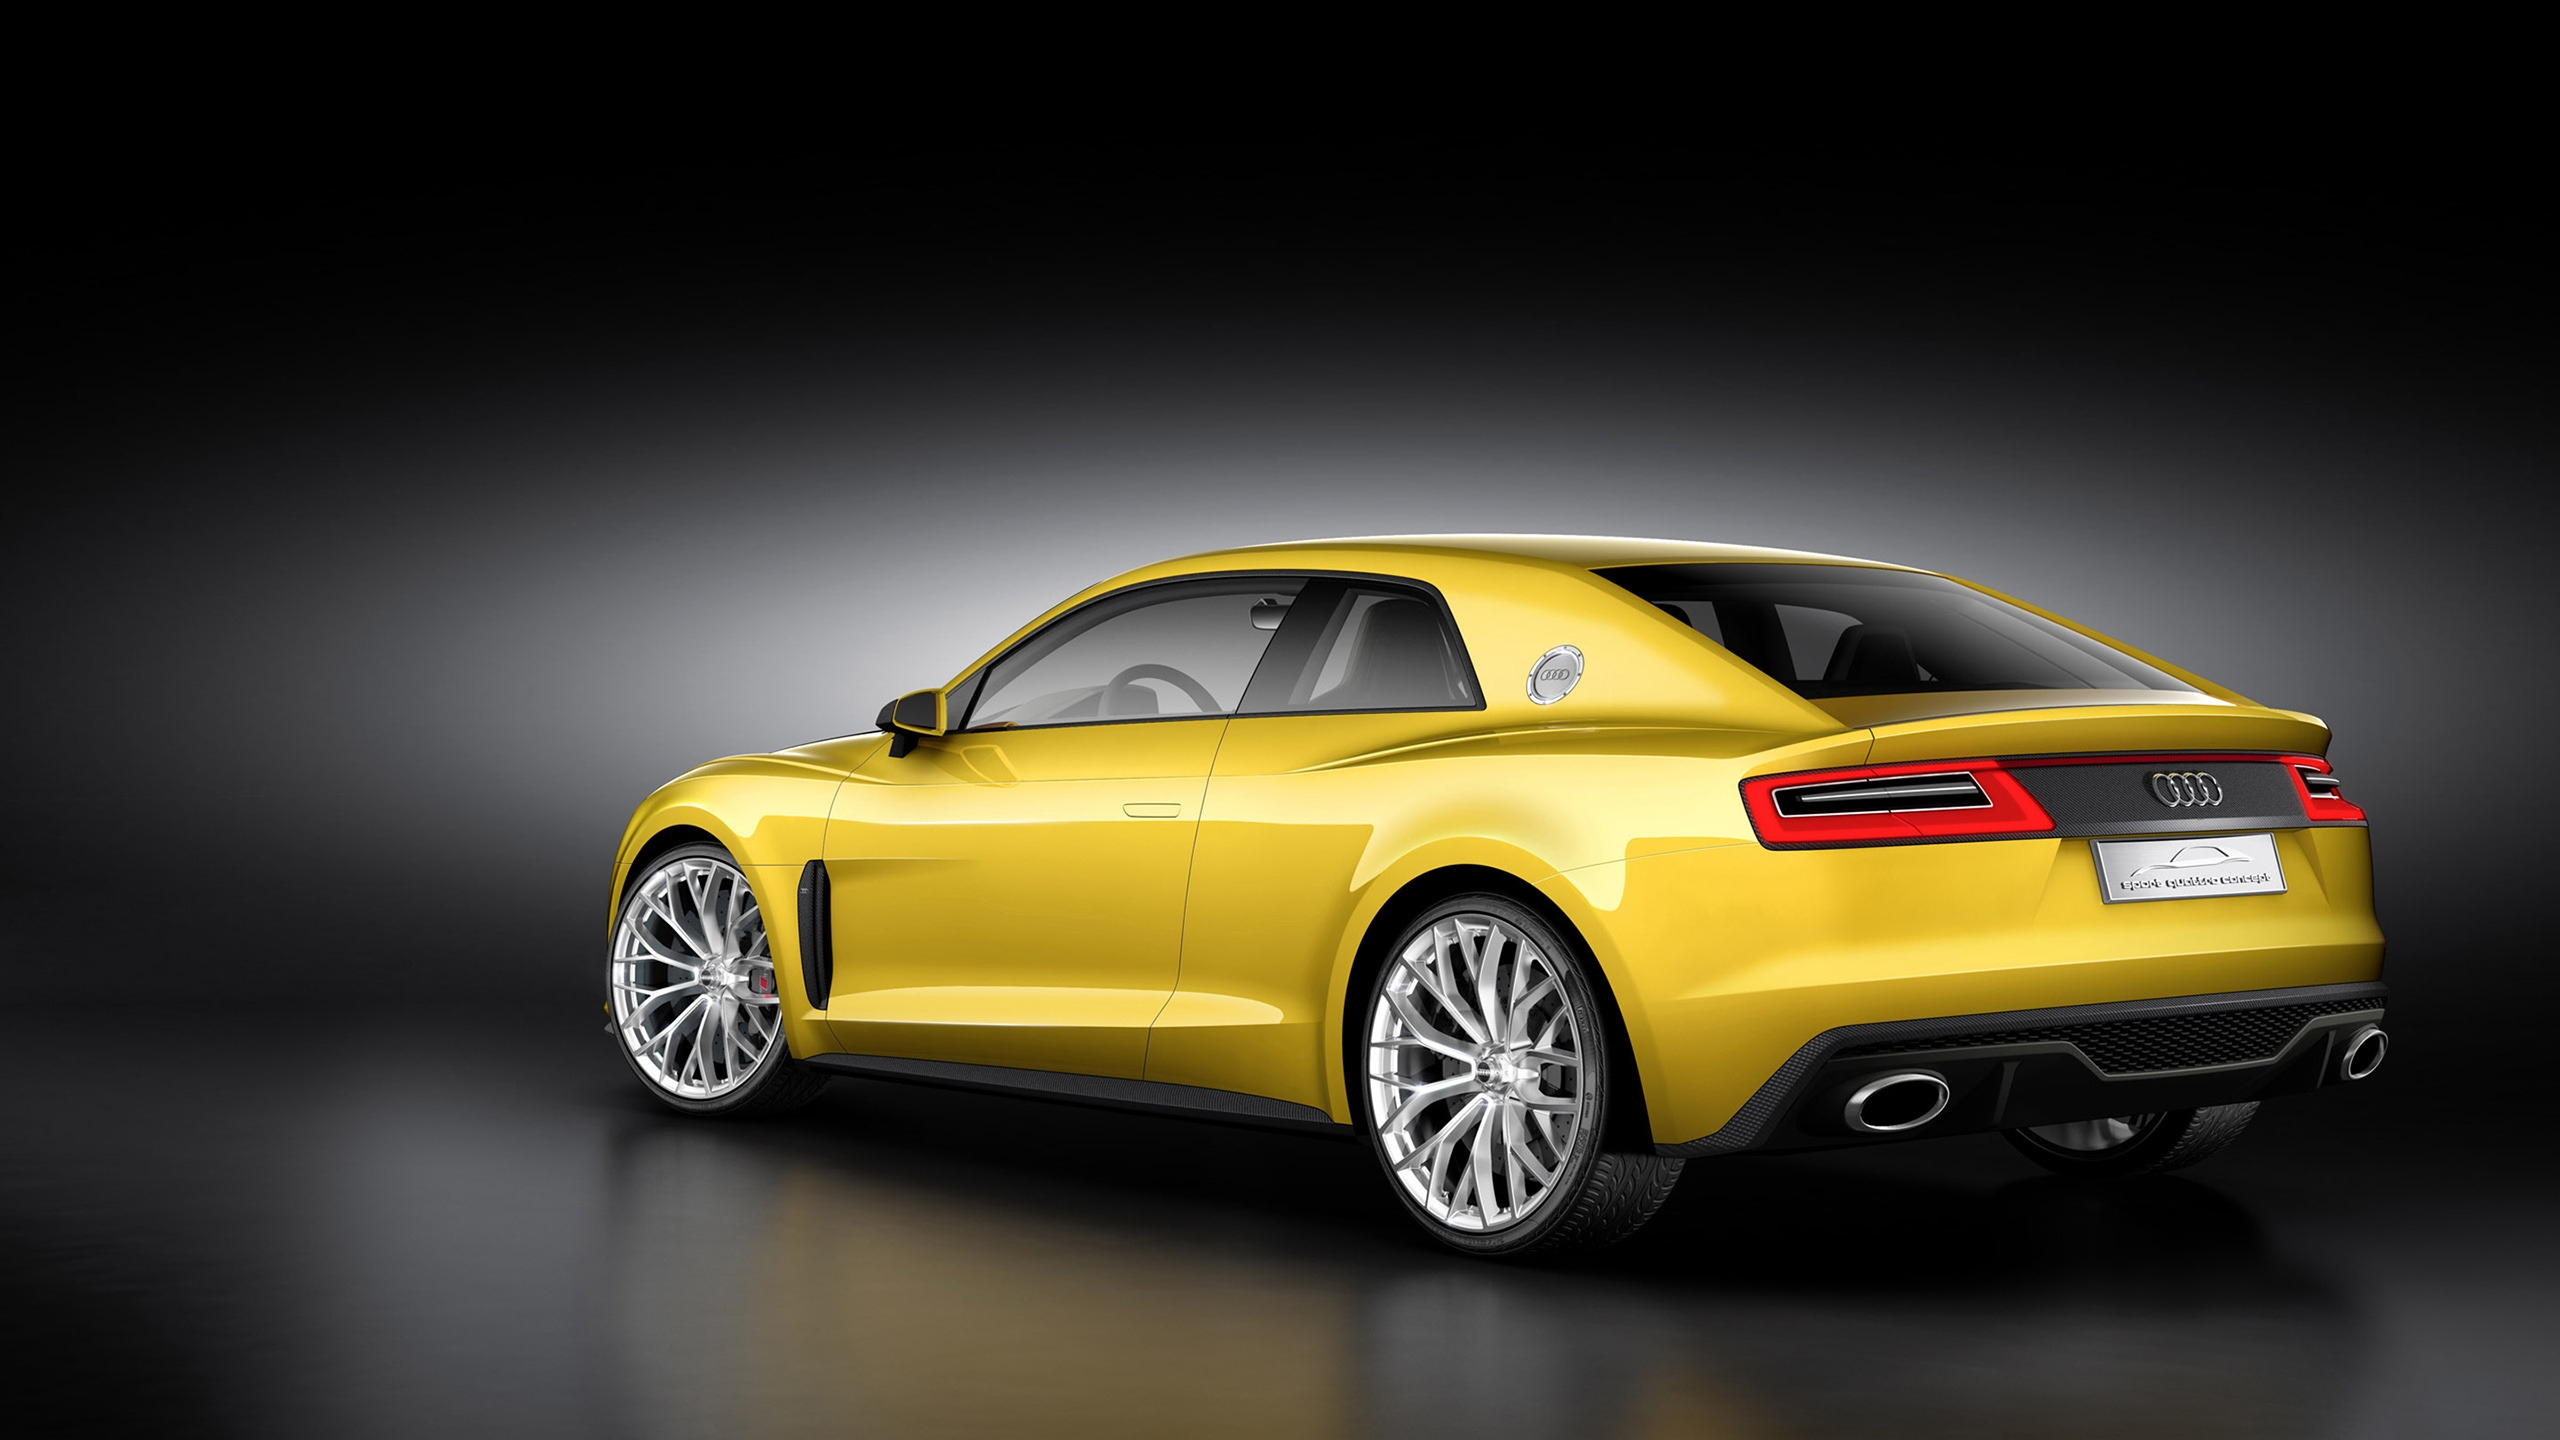 Rear of Audi Sport Quattro Concept for 2560x1440 HDTV resolution